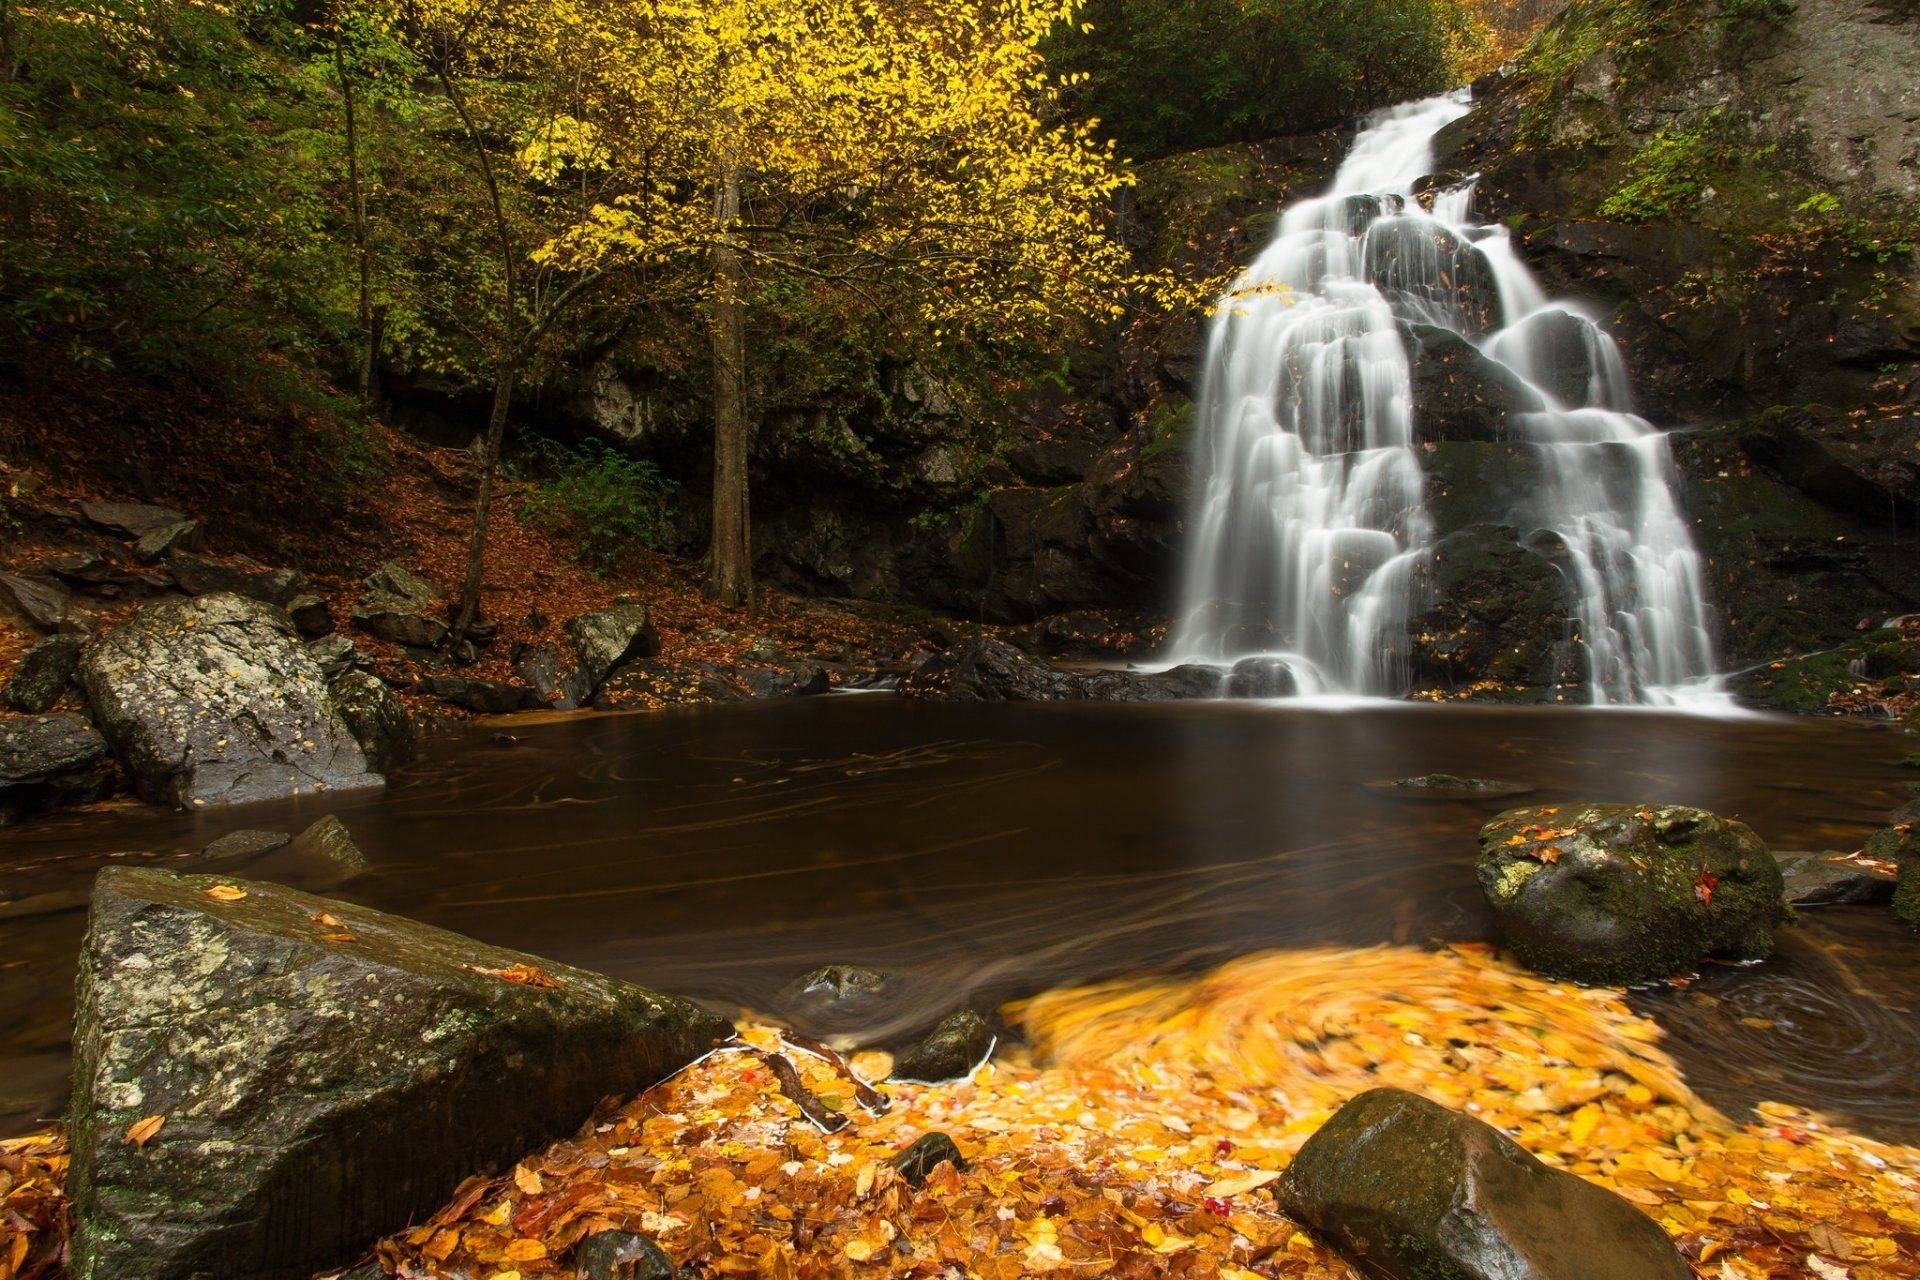 1920x1280 spruce flats falls great smoky mountains national park tennessee waterfall  stage river stones leaves autumn